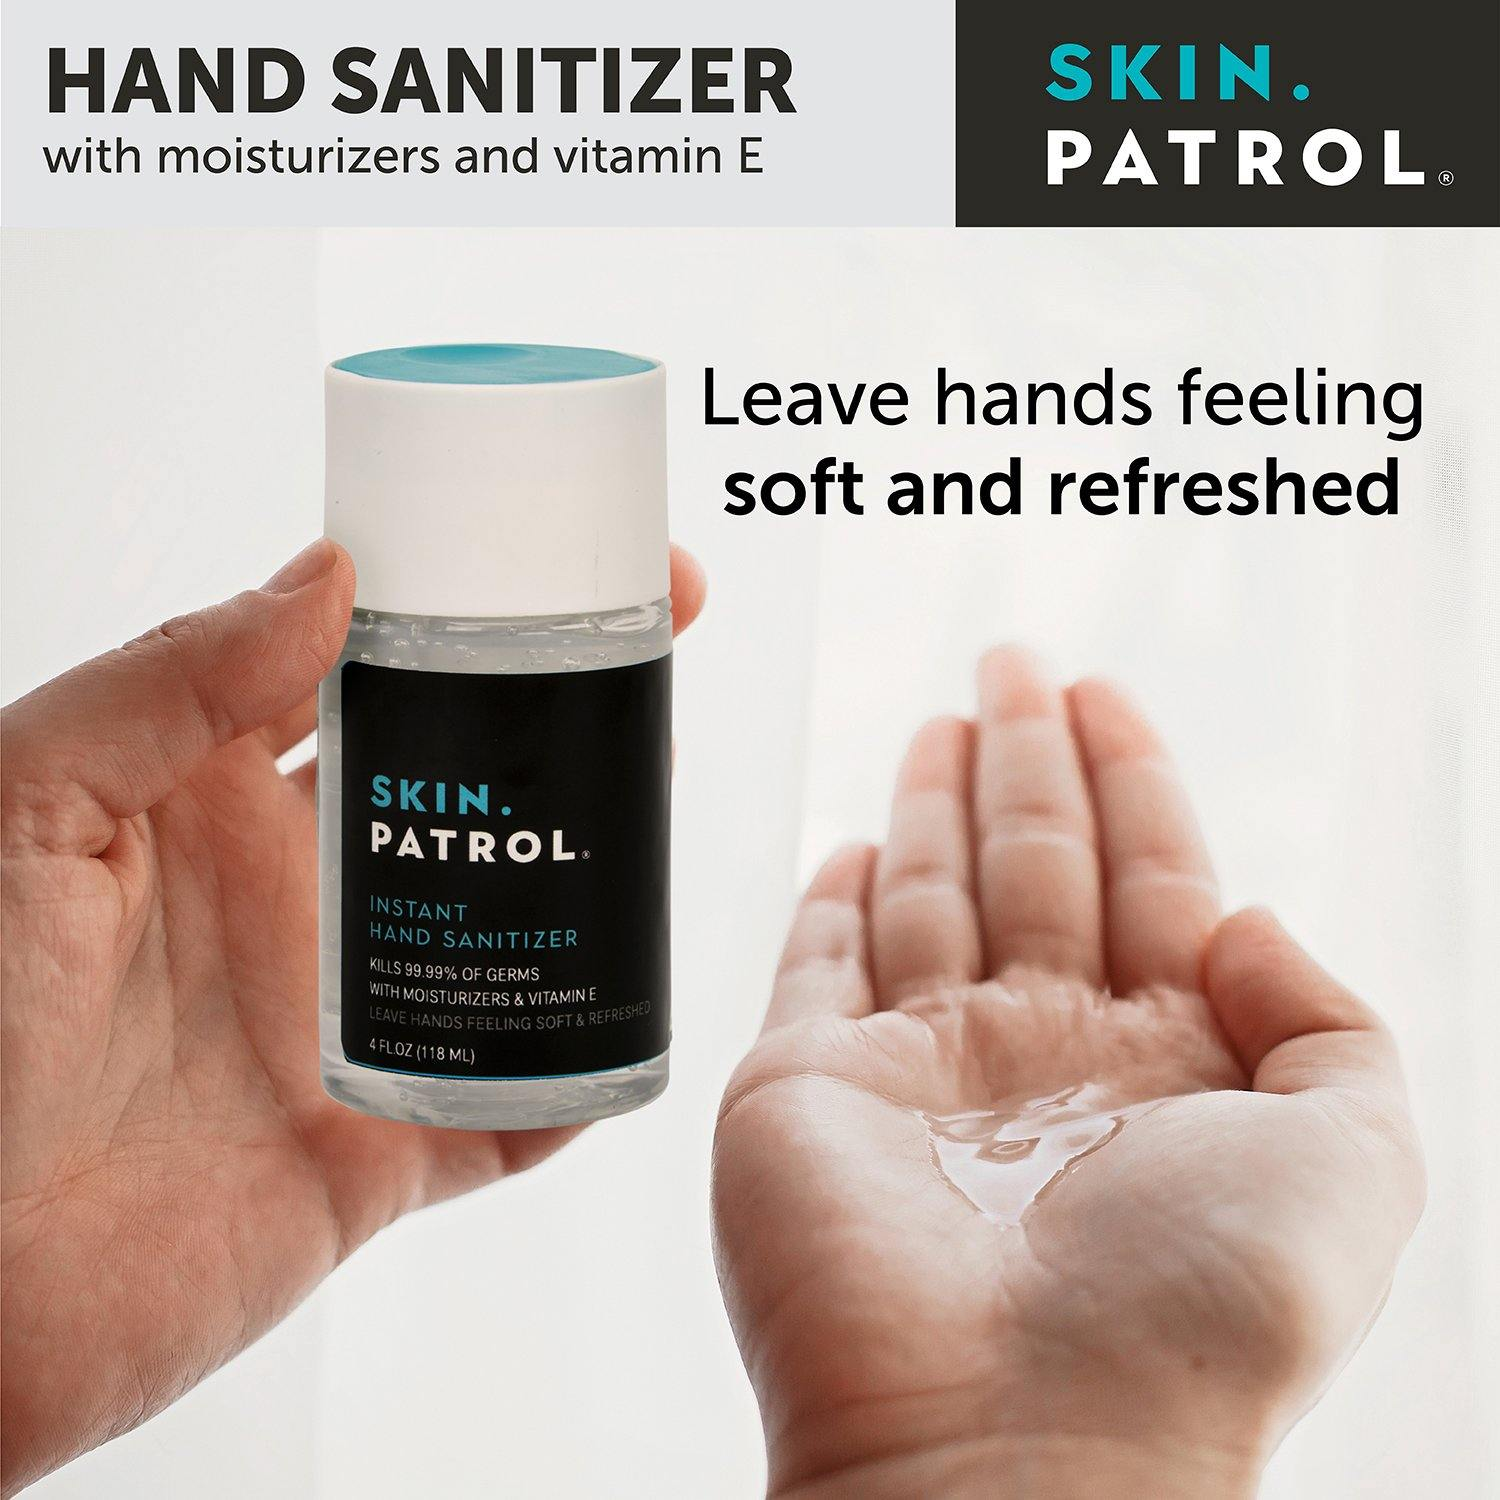 Skin Patrol Hand Sanitizer | PatrolGrooming